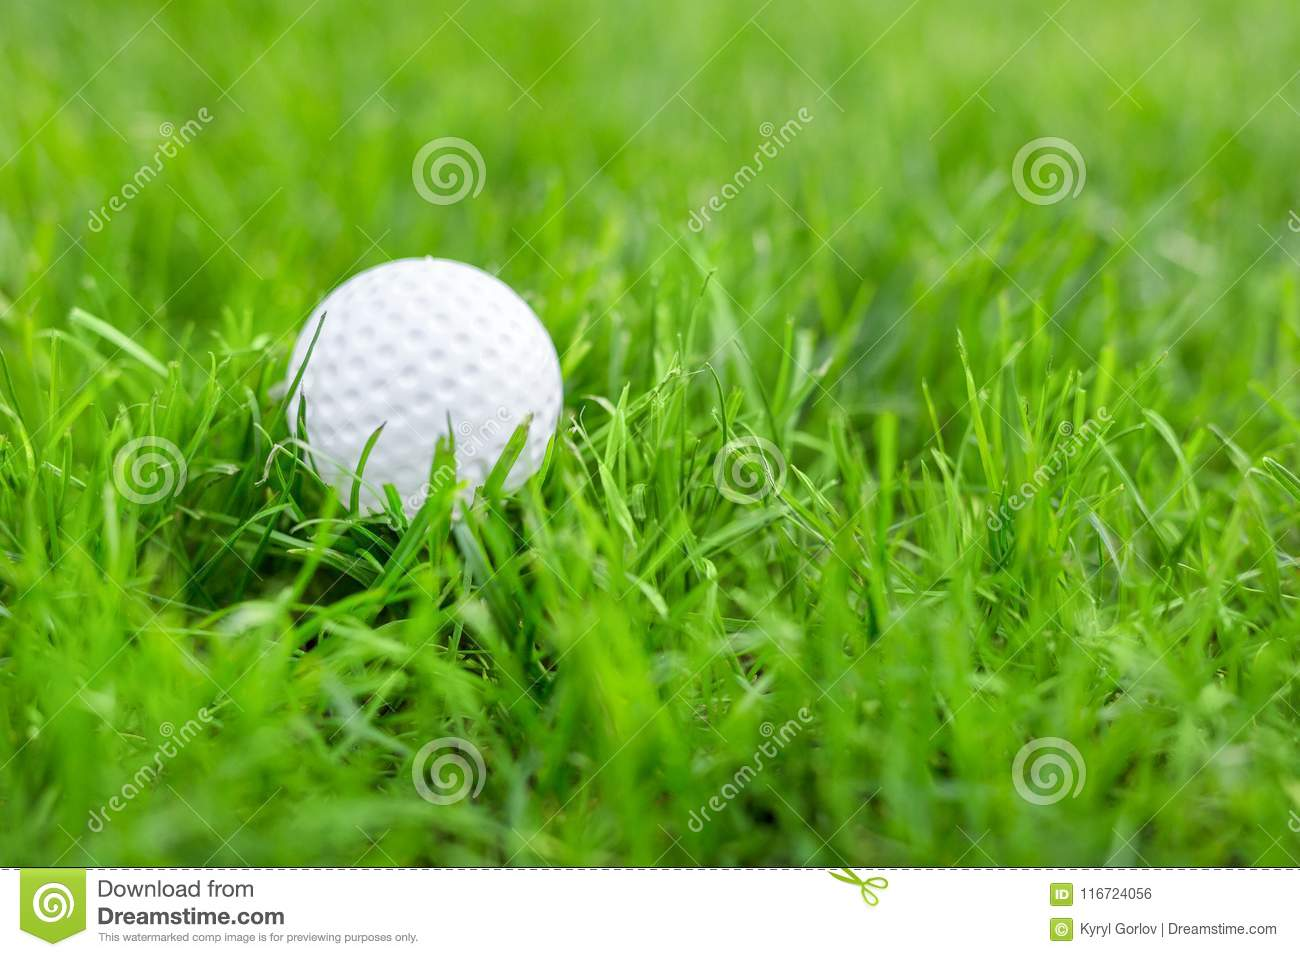 Close-up of white golf ball in green grass meadow. Details of play field. Badly prepared lawn for professional game